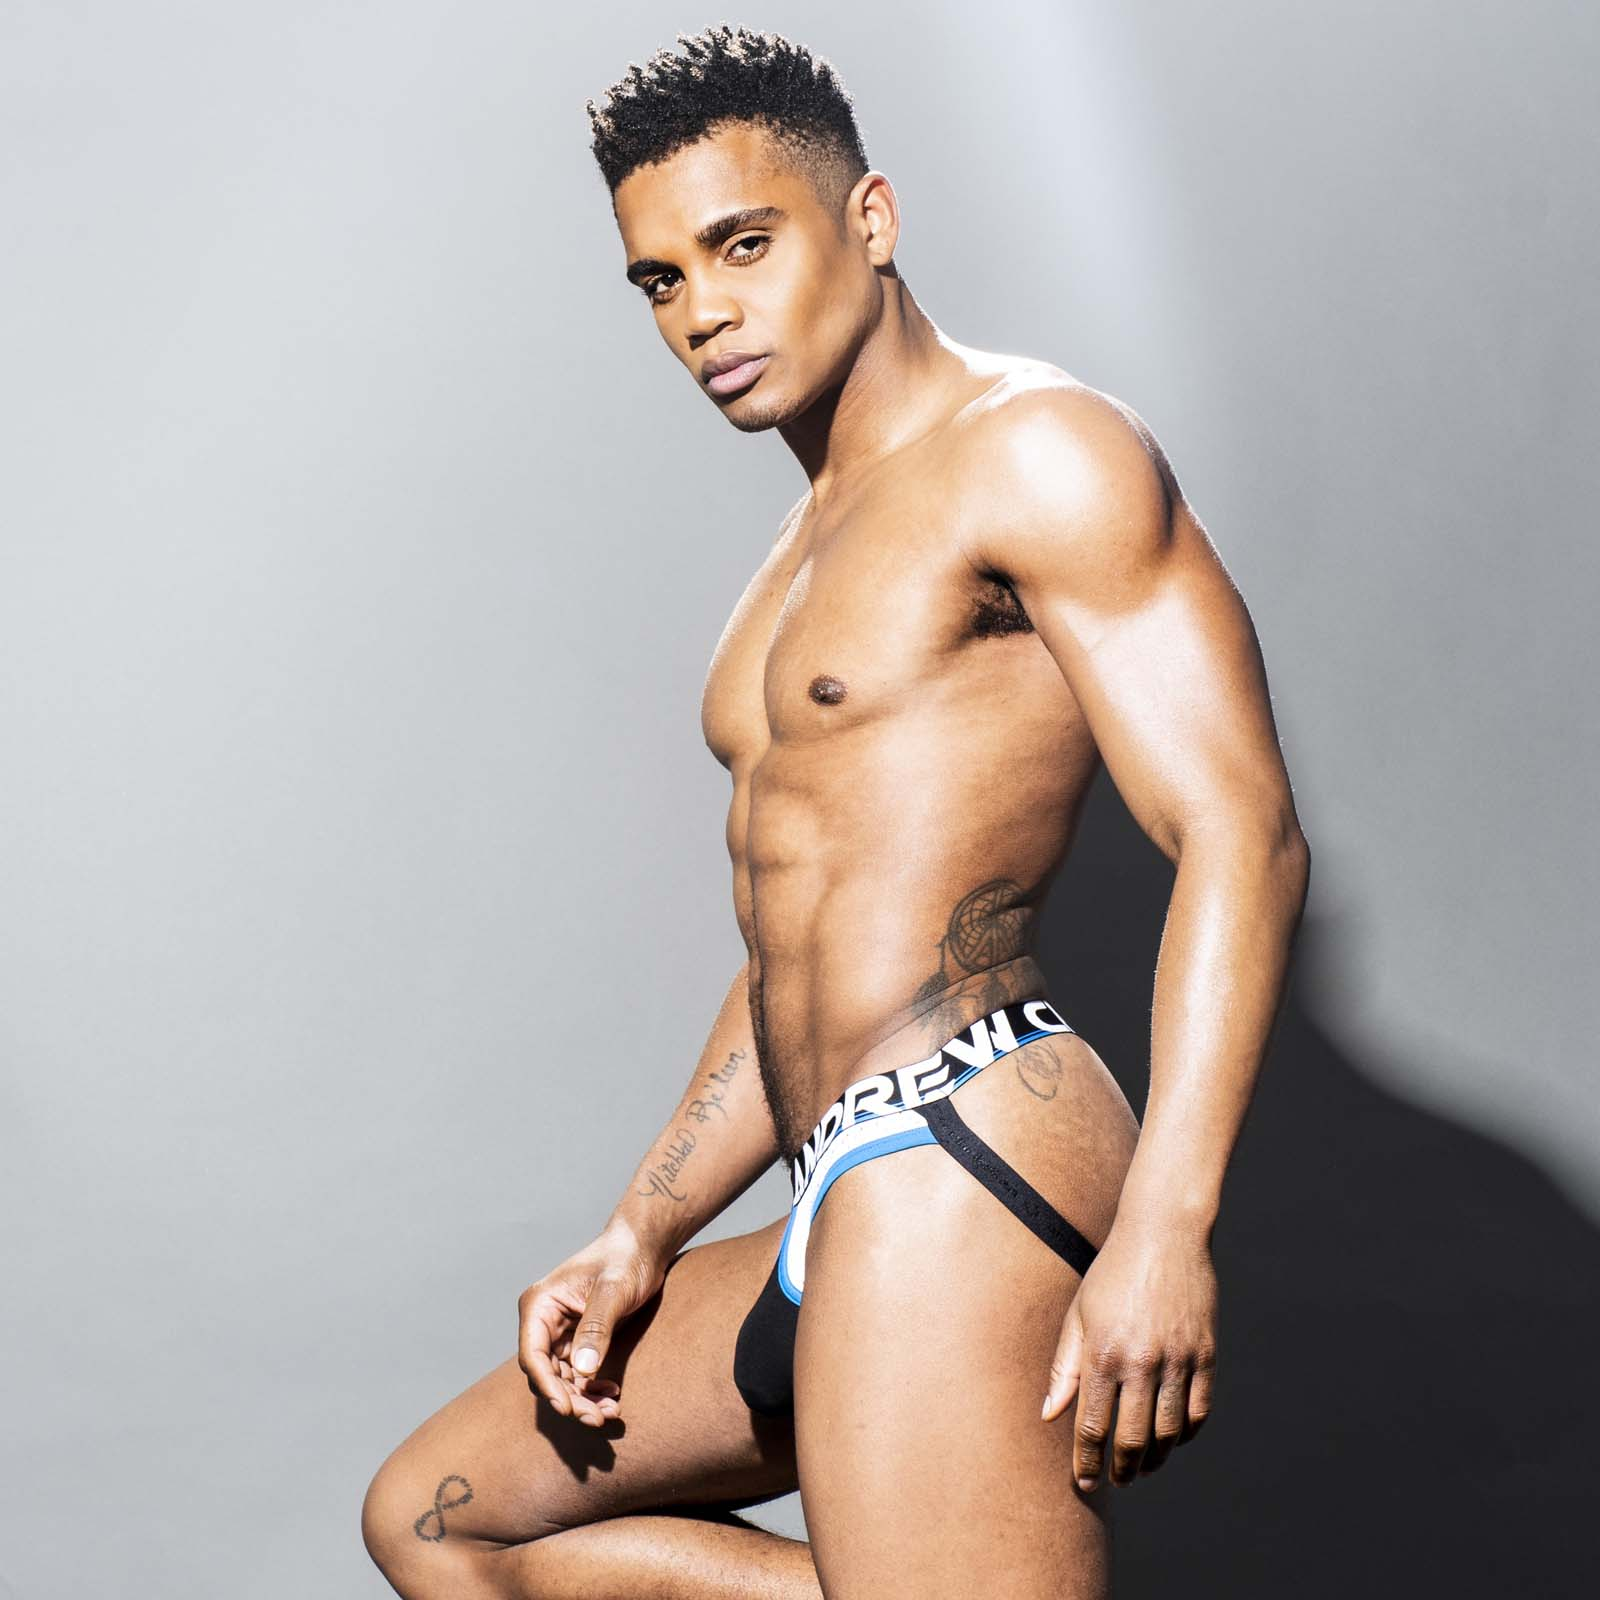 Jock Strap Andrew Christian Almost Naked Retro Mesh 91535